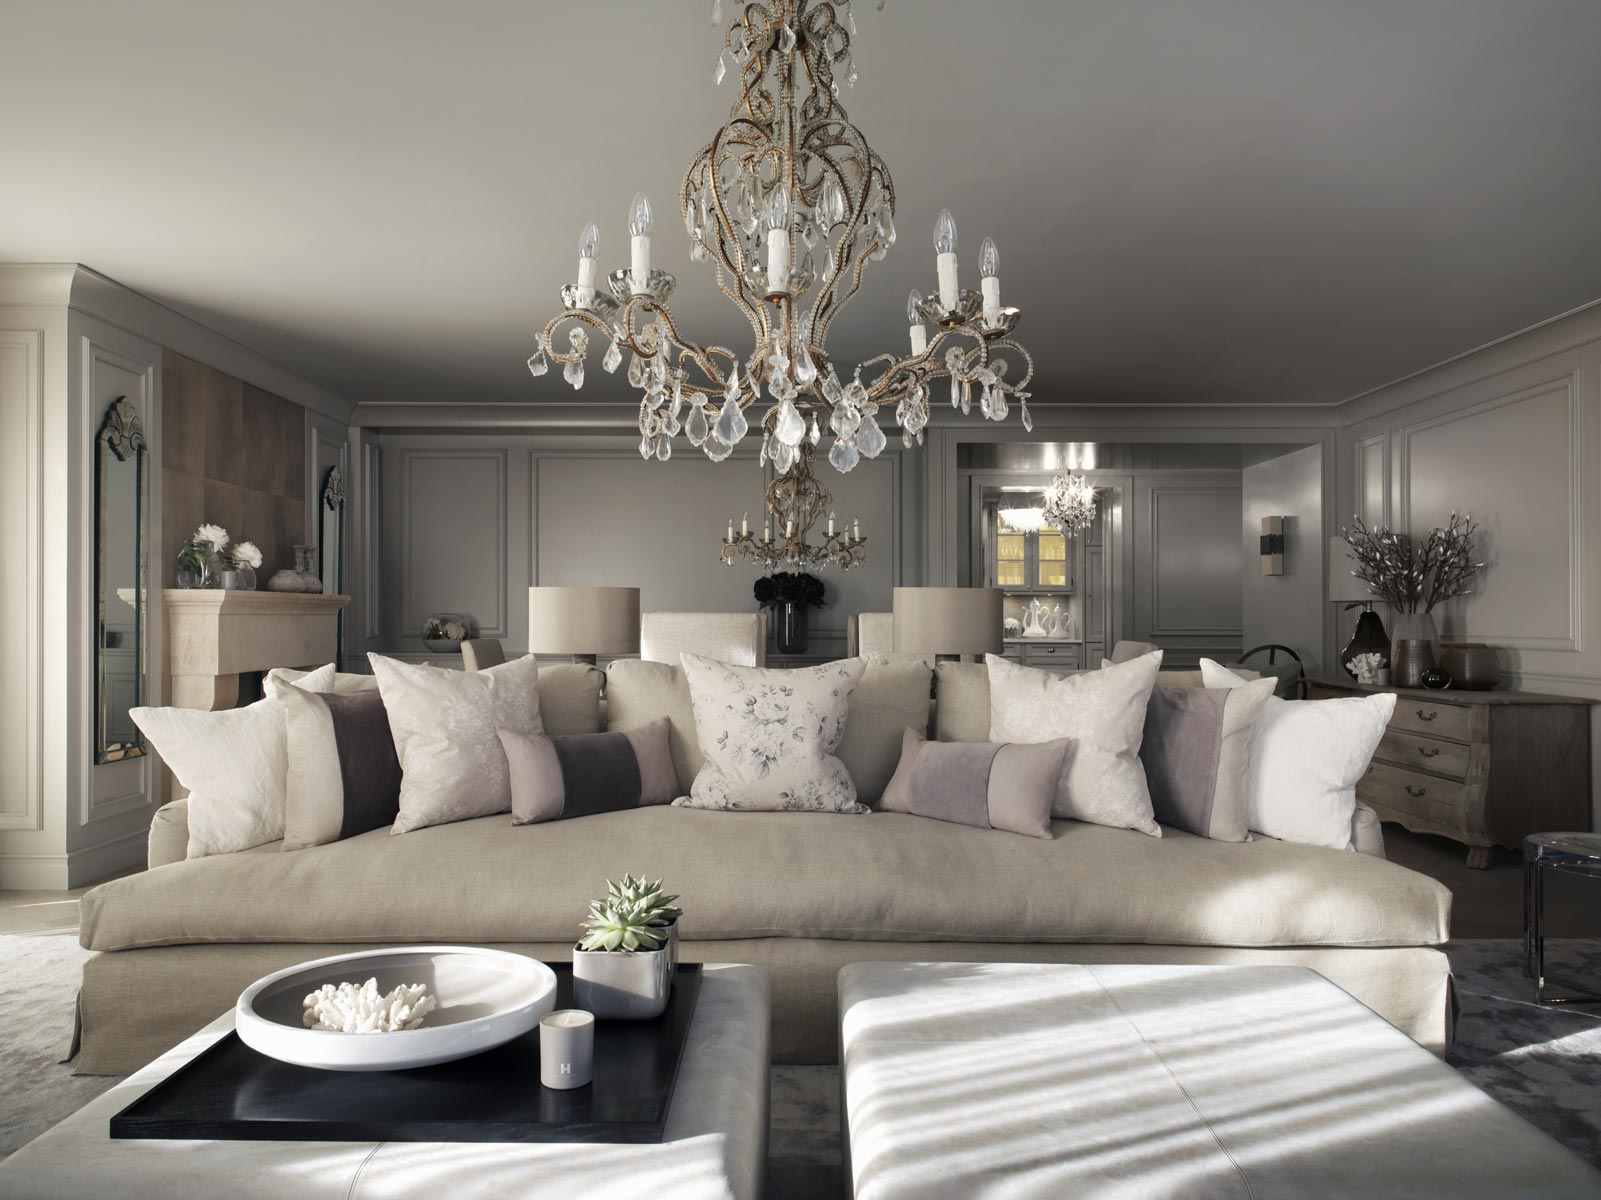 Top 10 kelly hoppen design ideas for Room decor inspiration